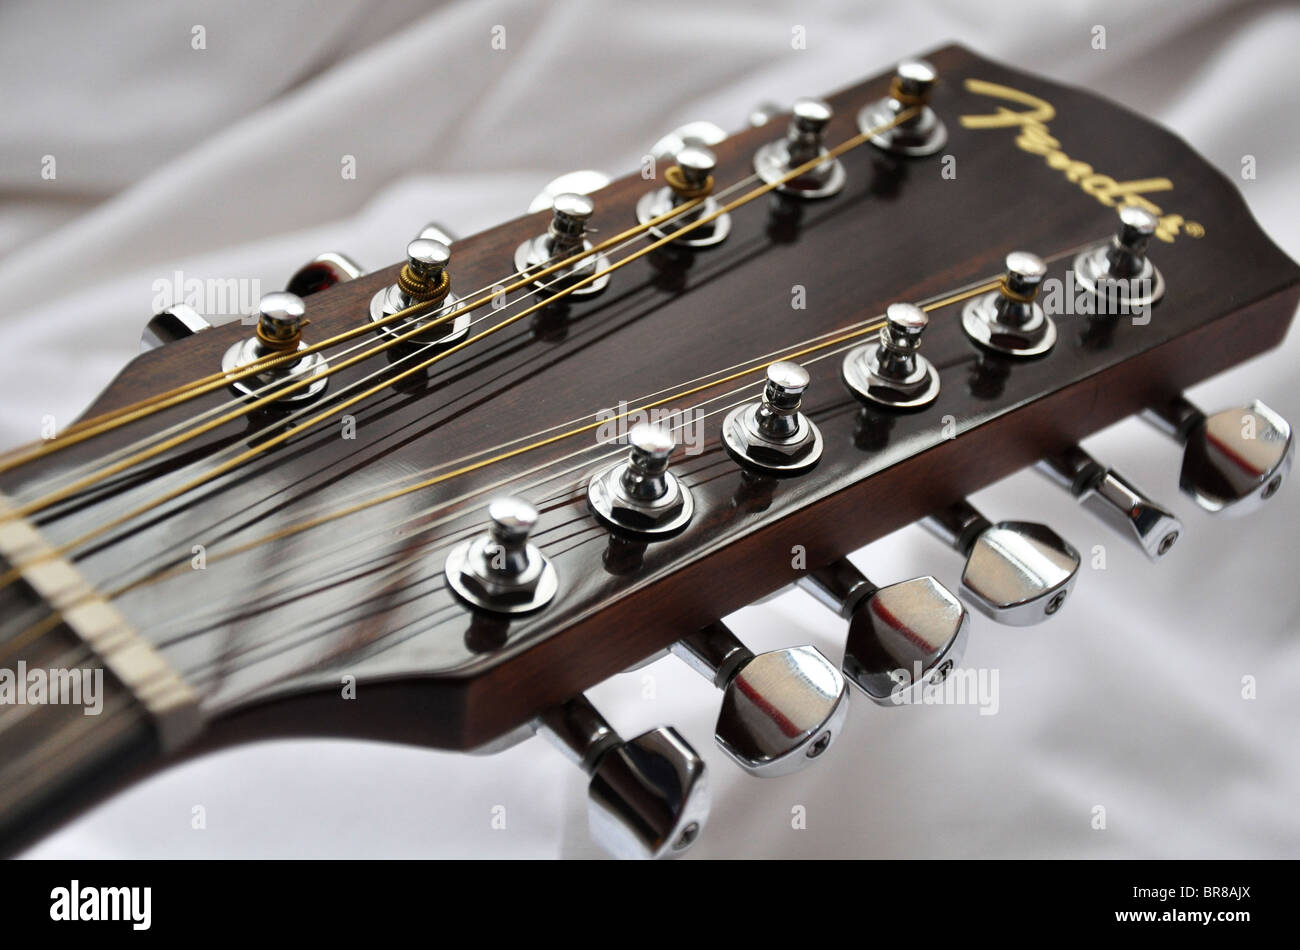 Fender 12 string guitar head and tuning pegs Stock Photo